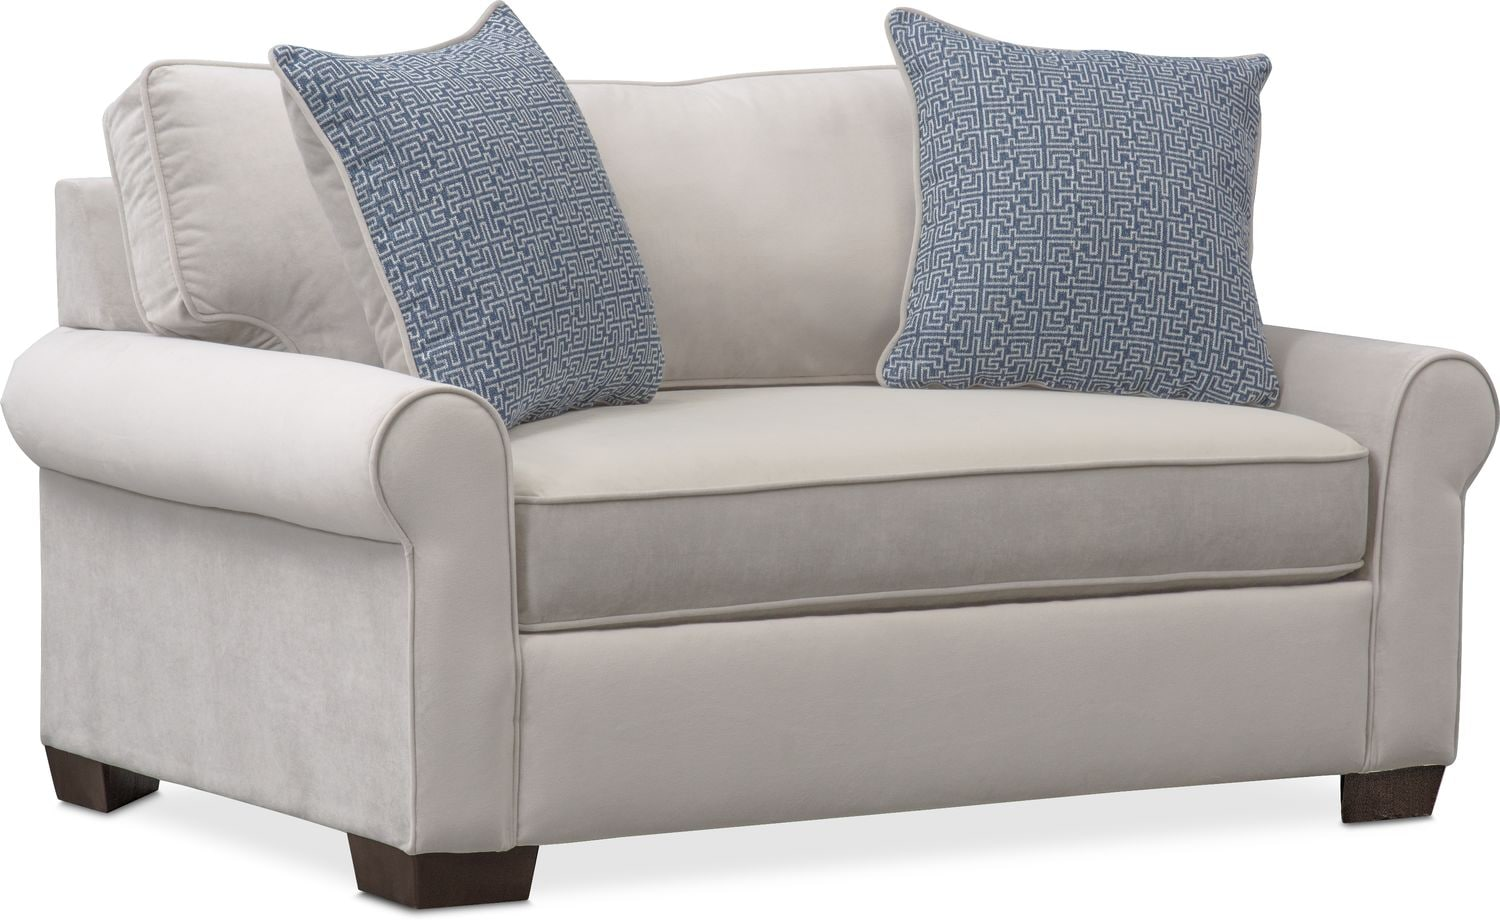 chair and a half sleeper chaise lounge patio blake twin value city furniture click to change image